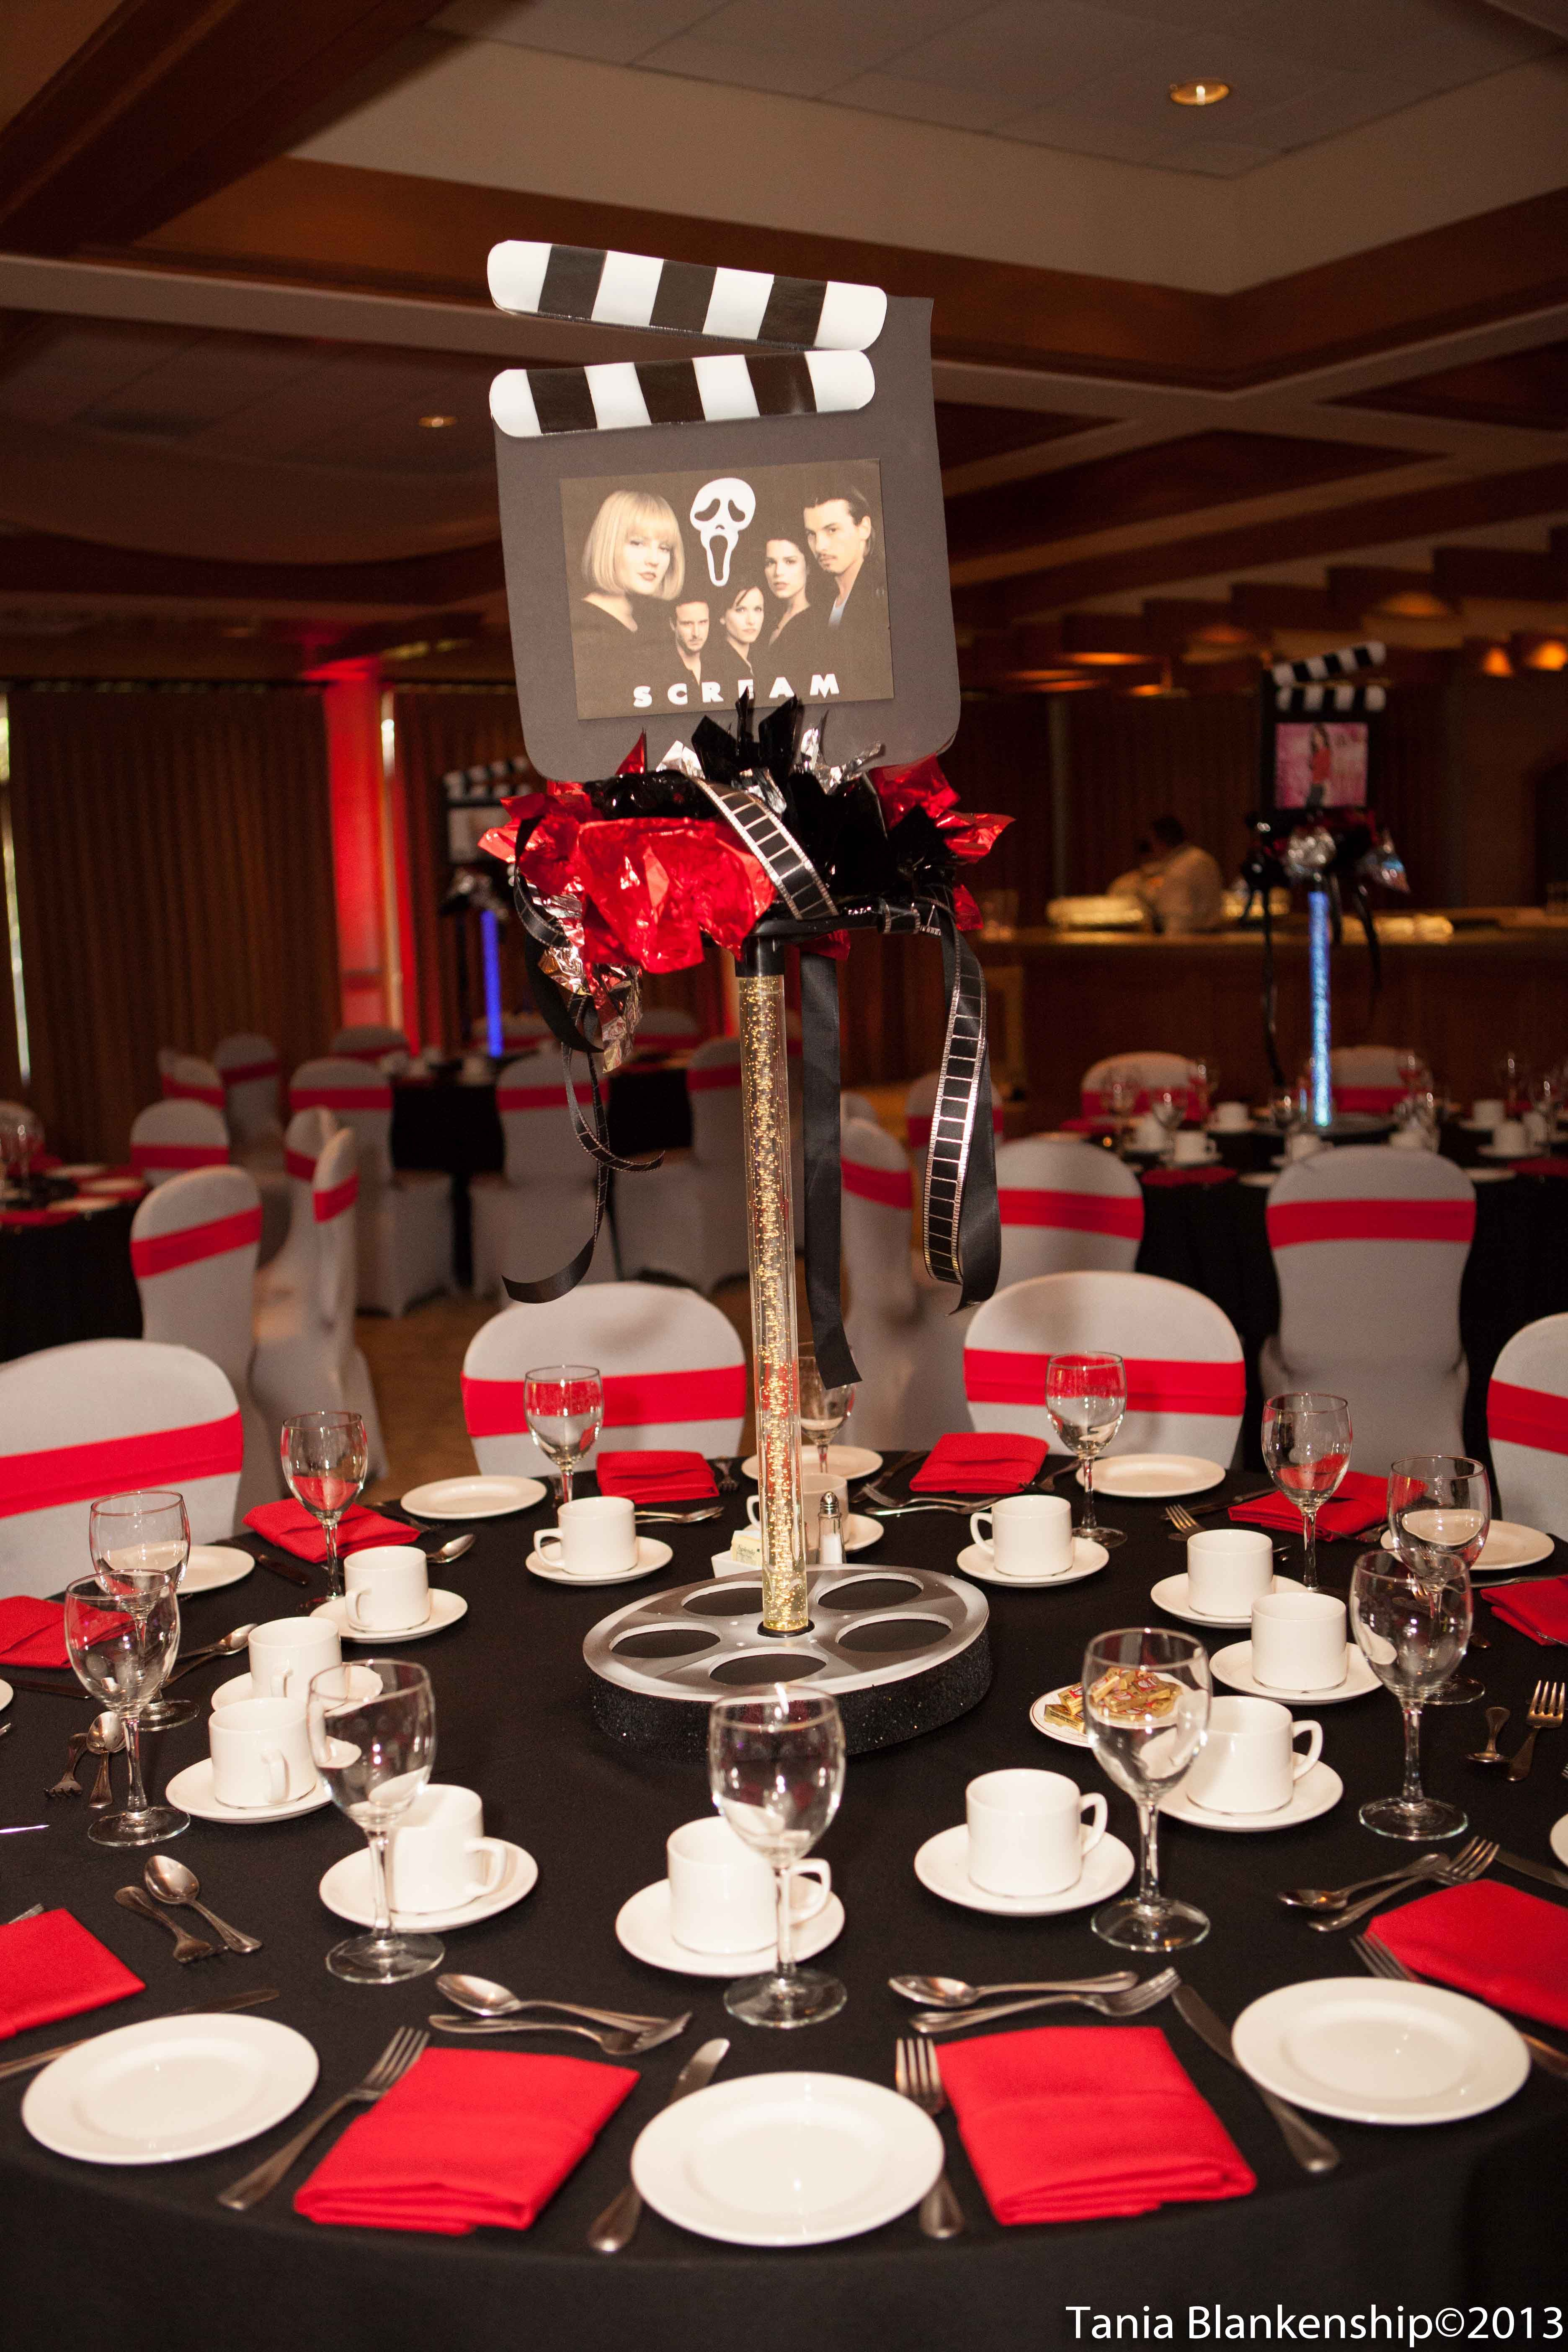 Movie theme bar bat mitzvah tall centerpiece red and